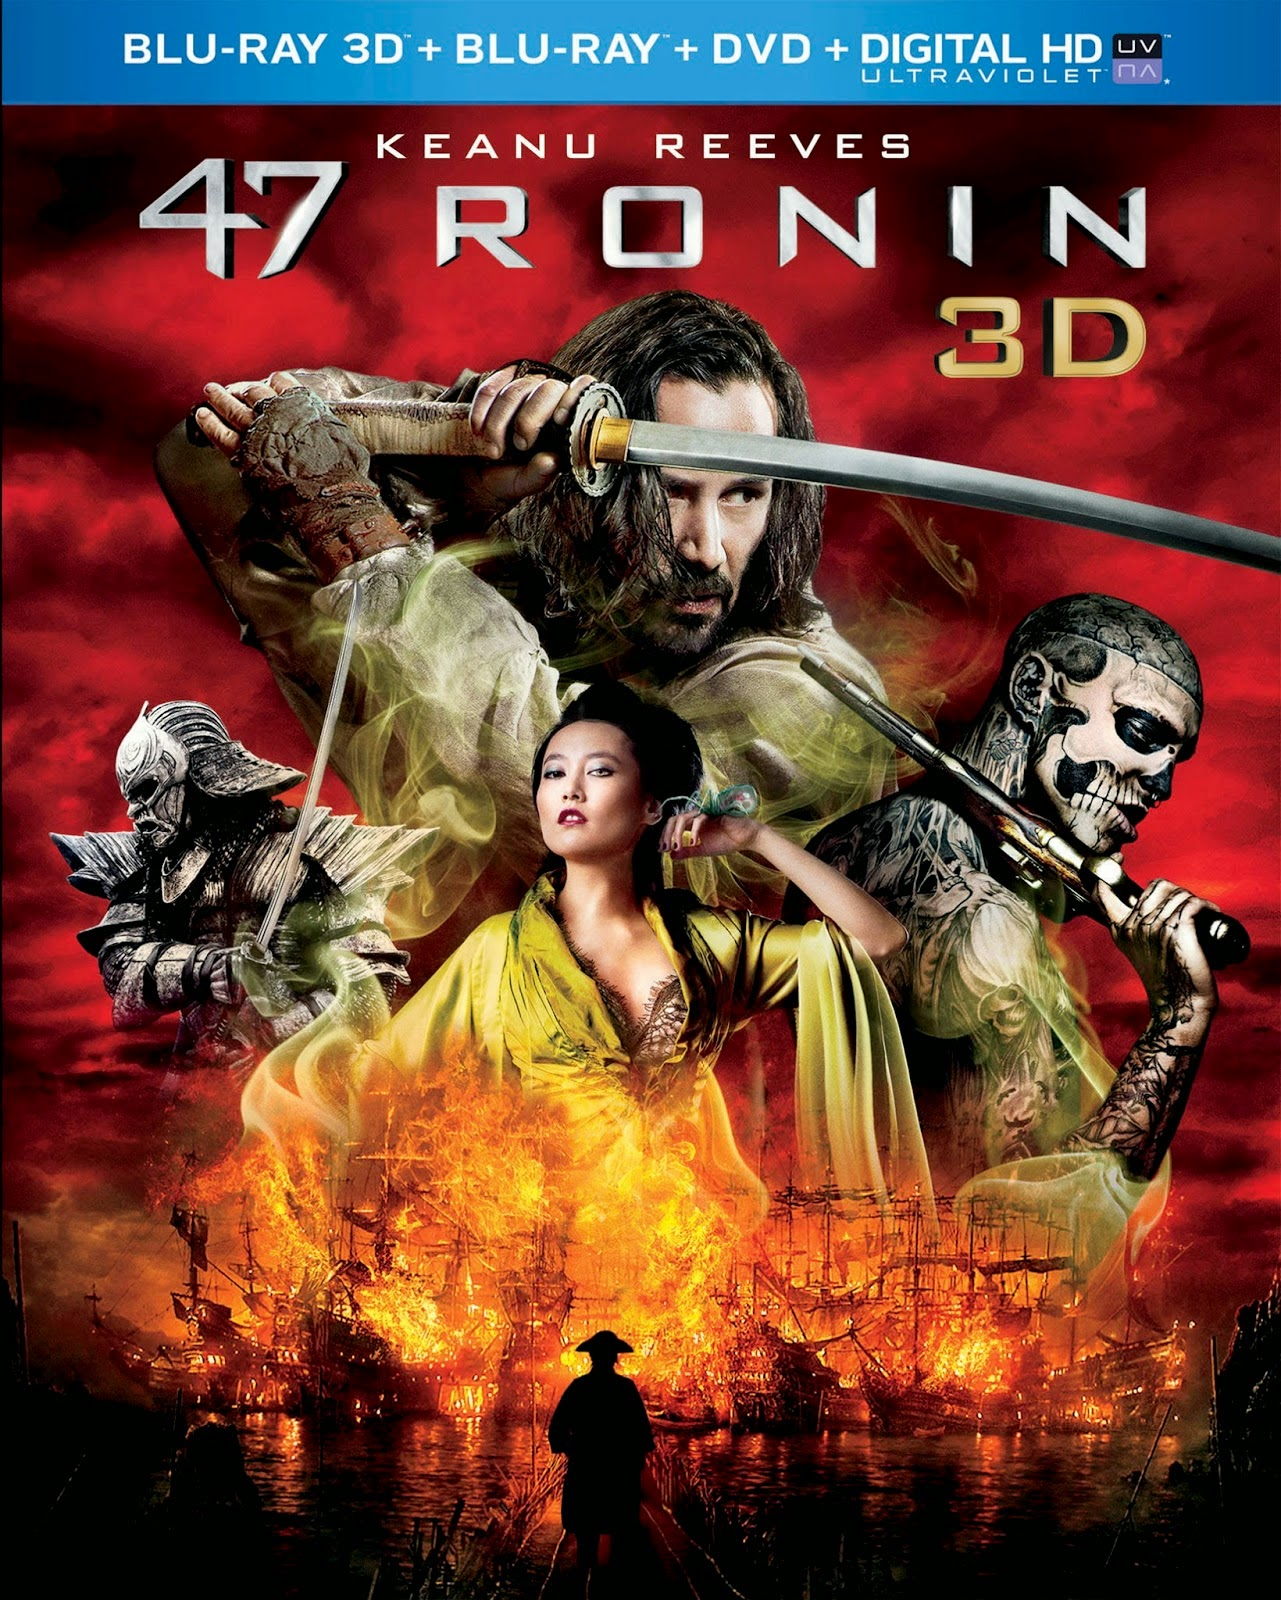 Congrats to our WINNER Moa B--47 Ronin movie via iTunes code!